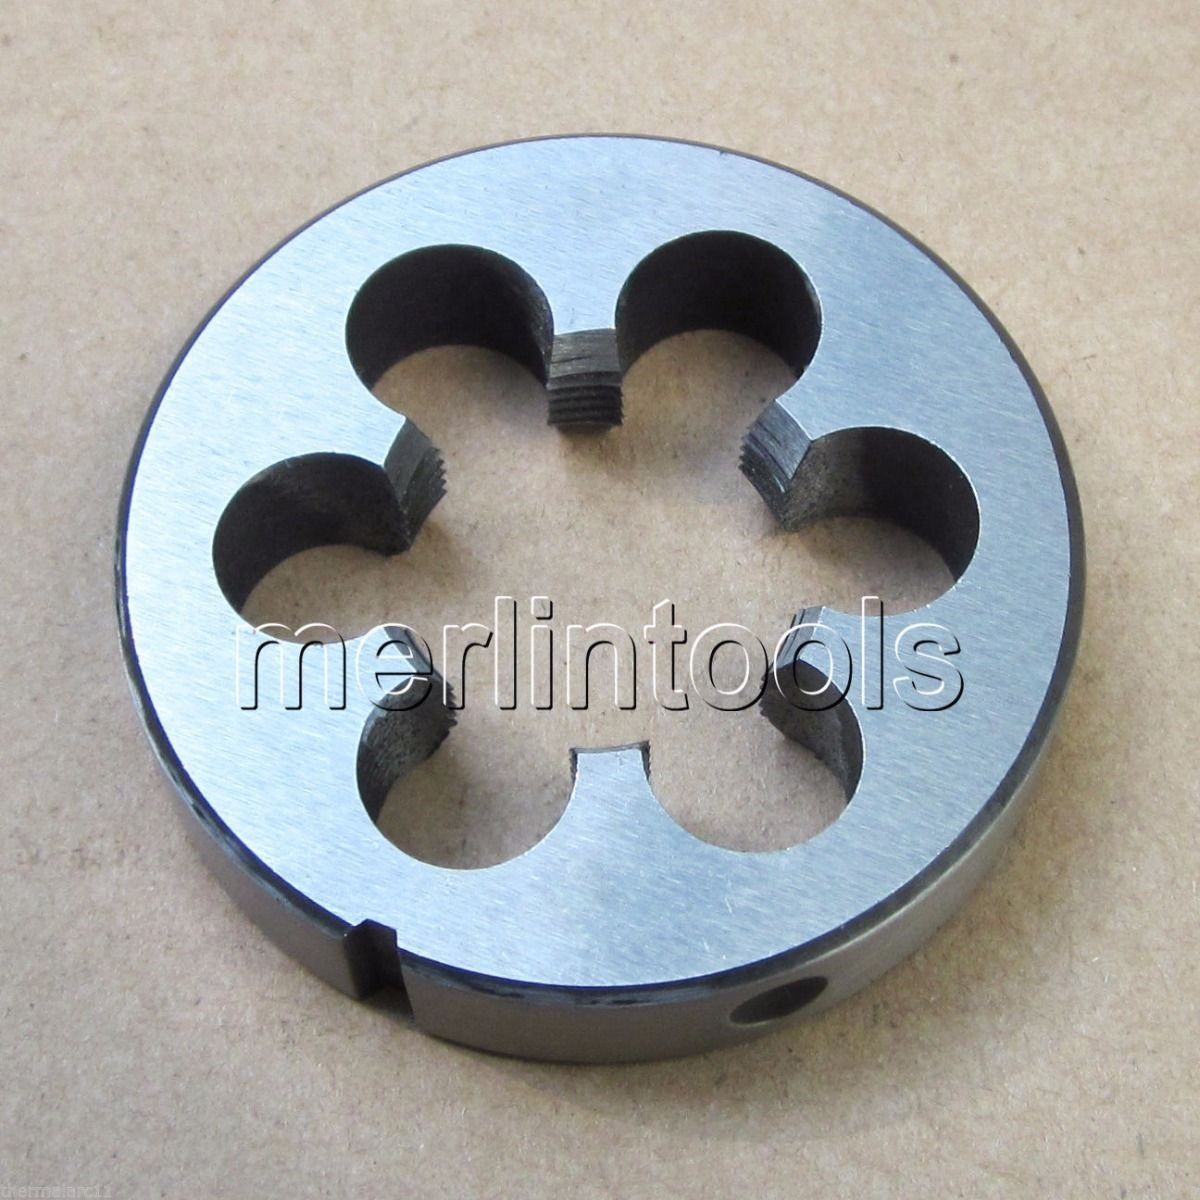 ironworker tools 40mm x 2 Metric Right hand Die M40 x 2 0mm